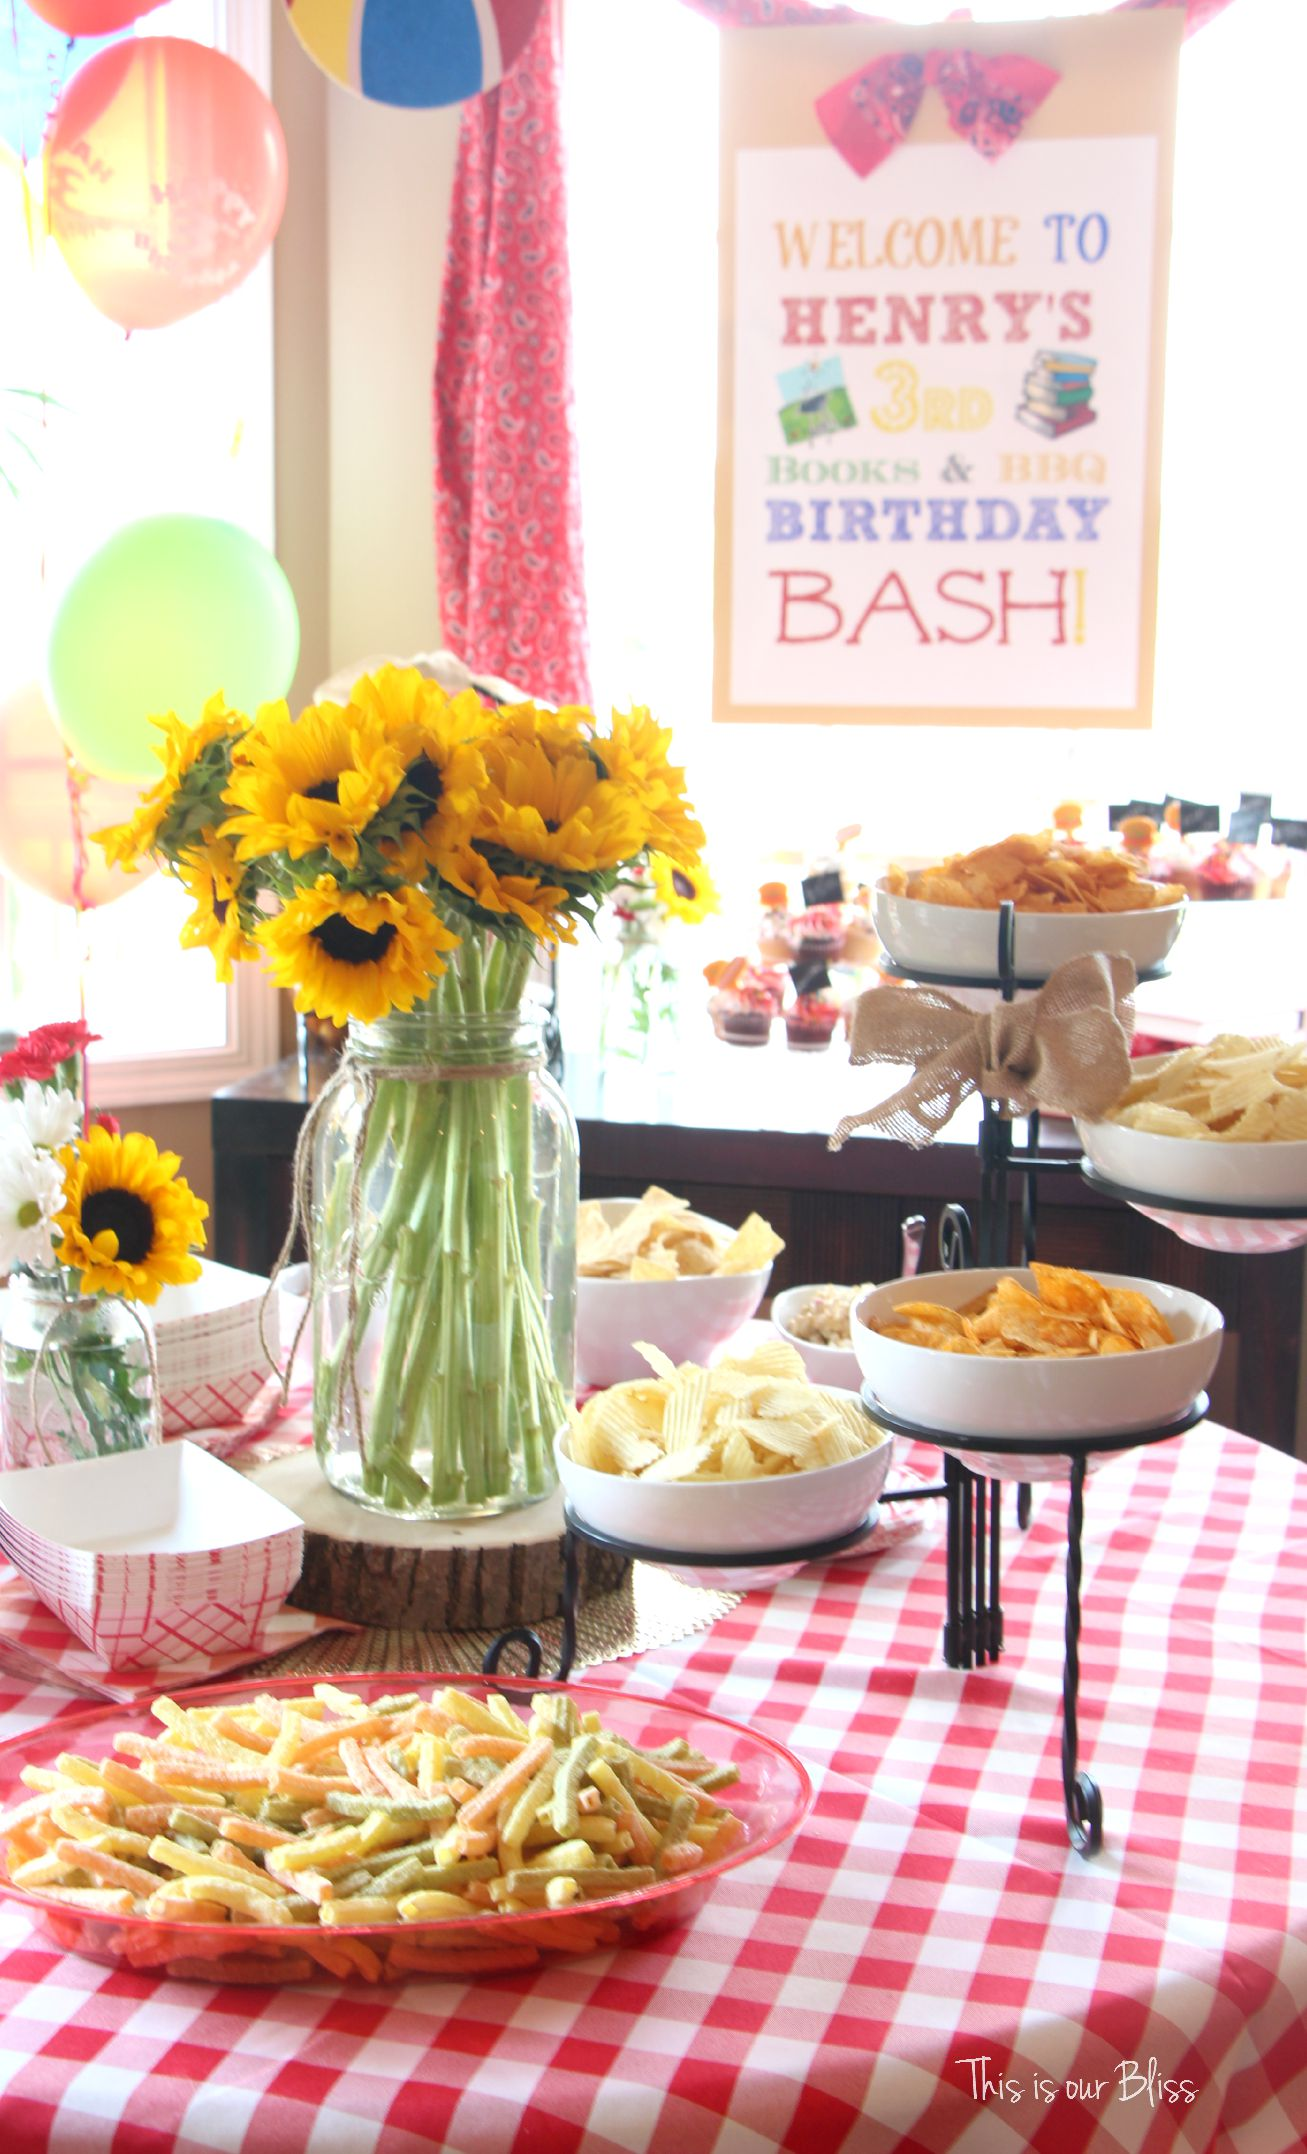 Books & BBQ | Henry\'s 3rd Birthday Bash - This is our Bliss